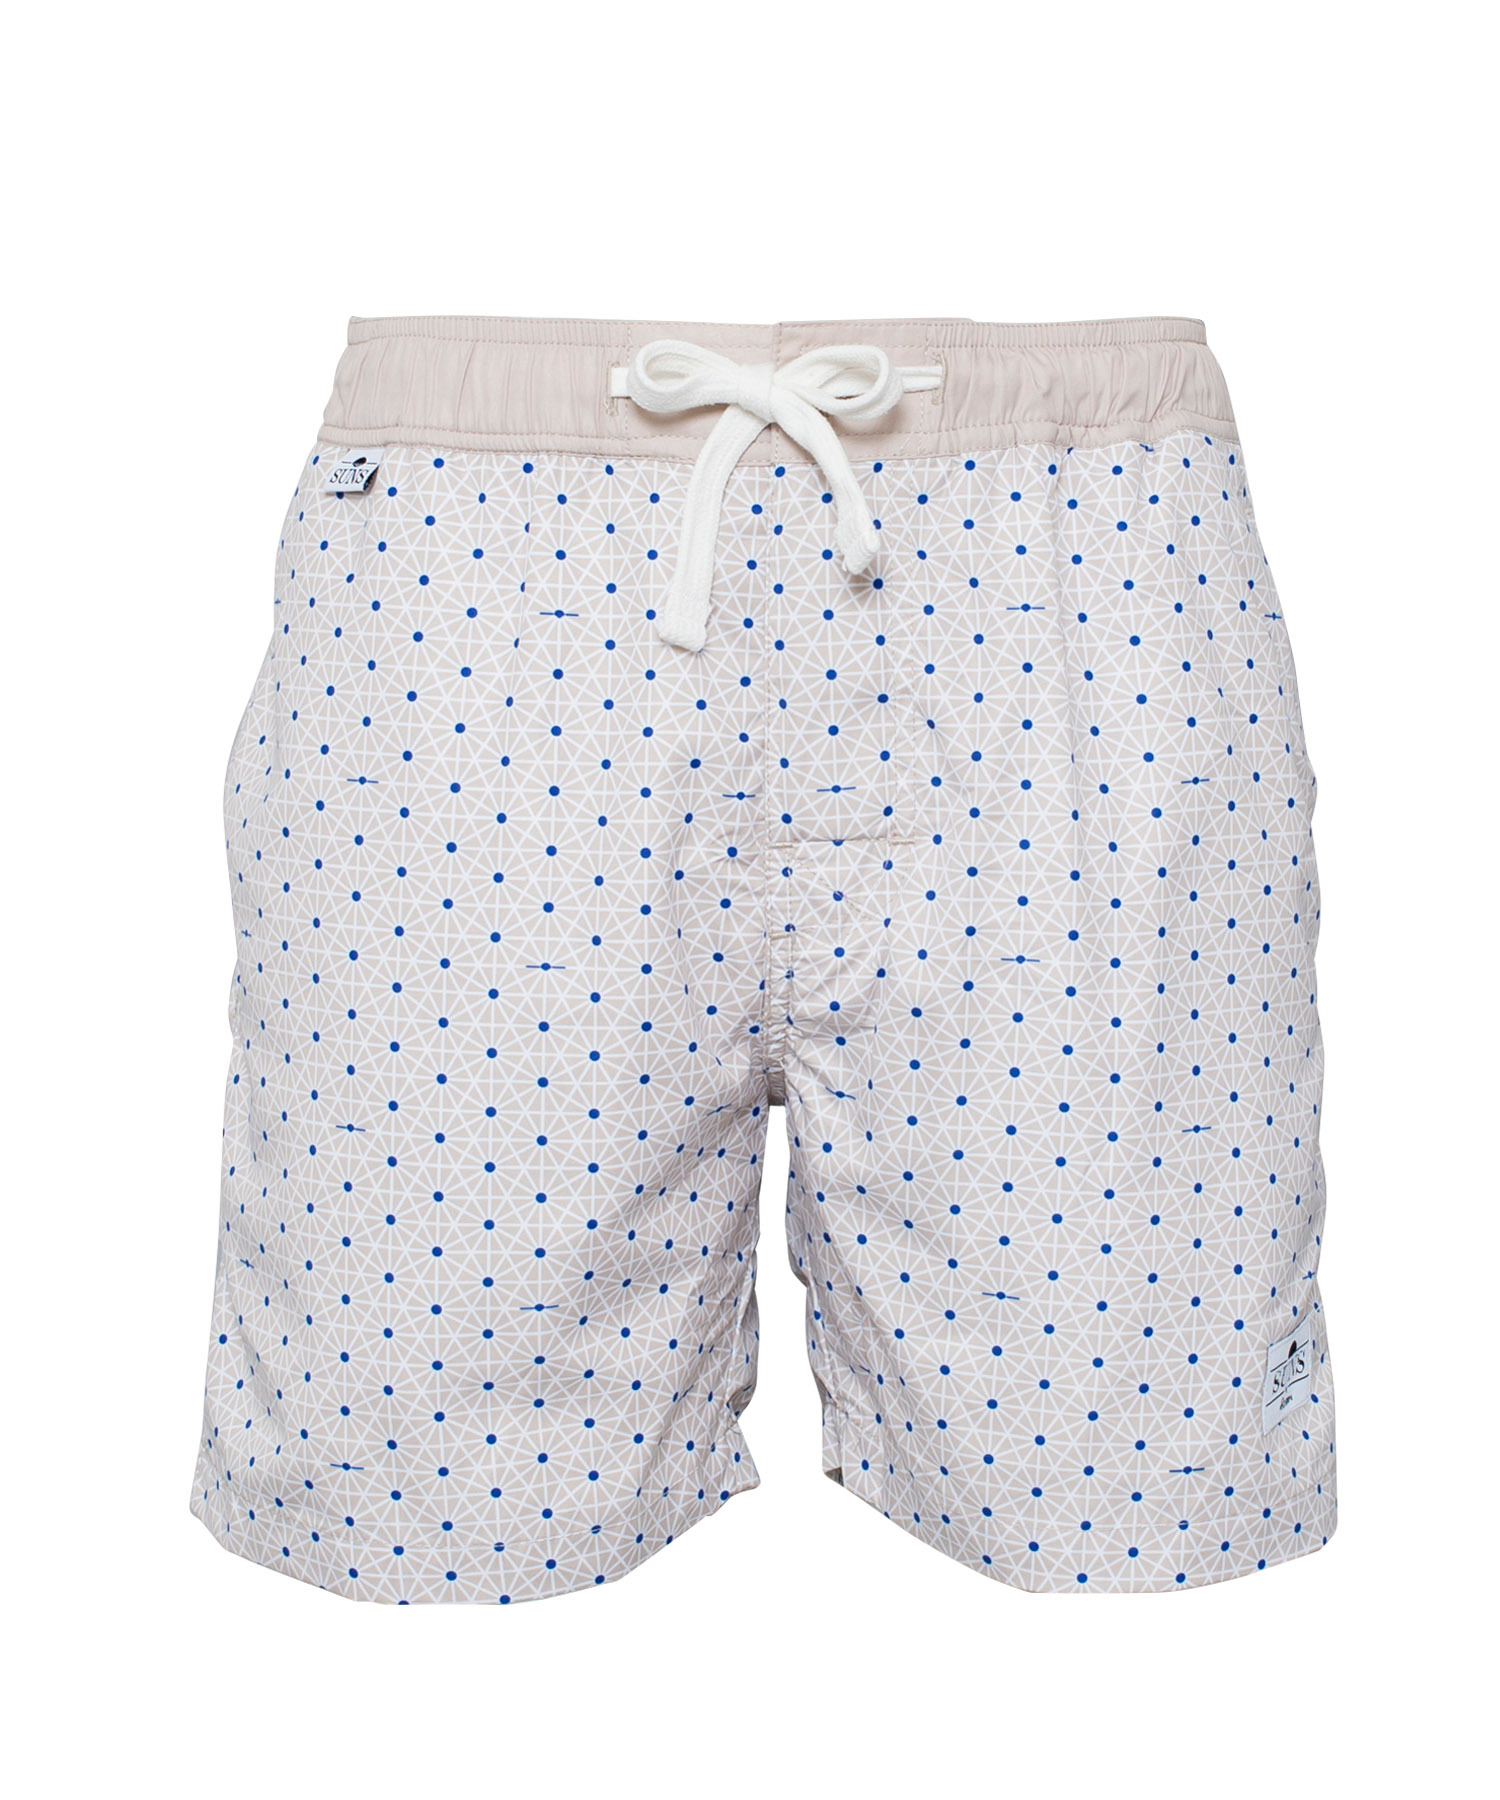 SUNS GEOMETRIC DOT PRINT SWIM SHORTS[RSW009]